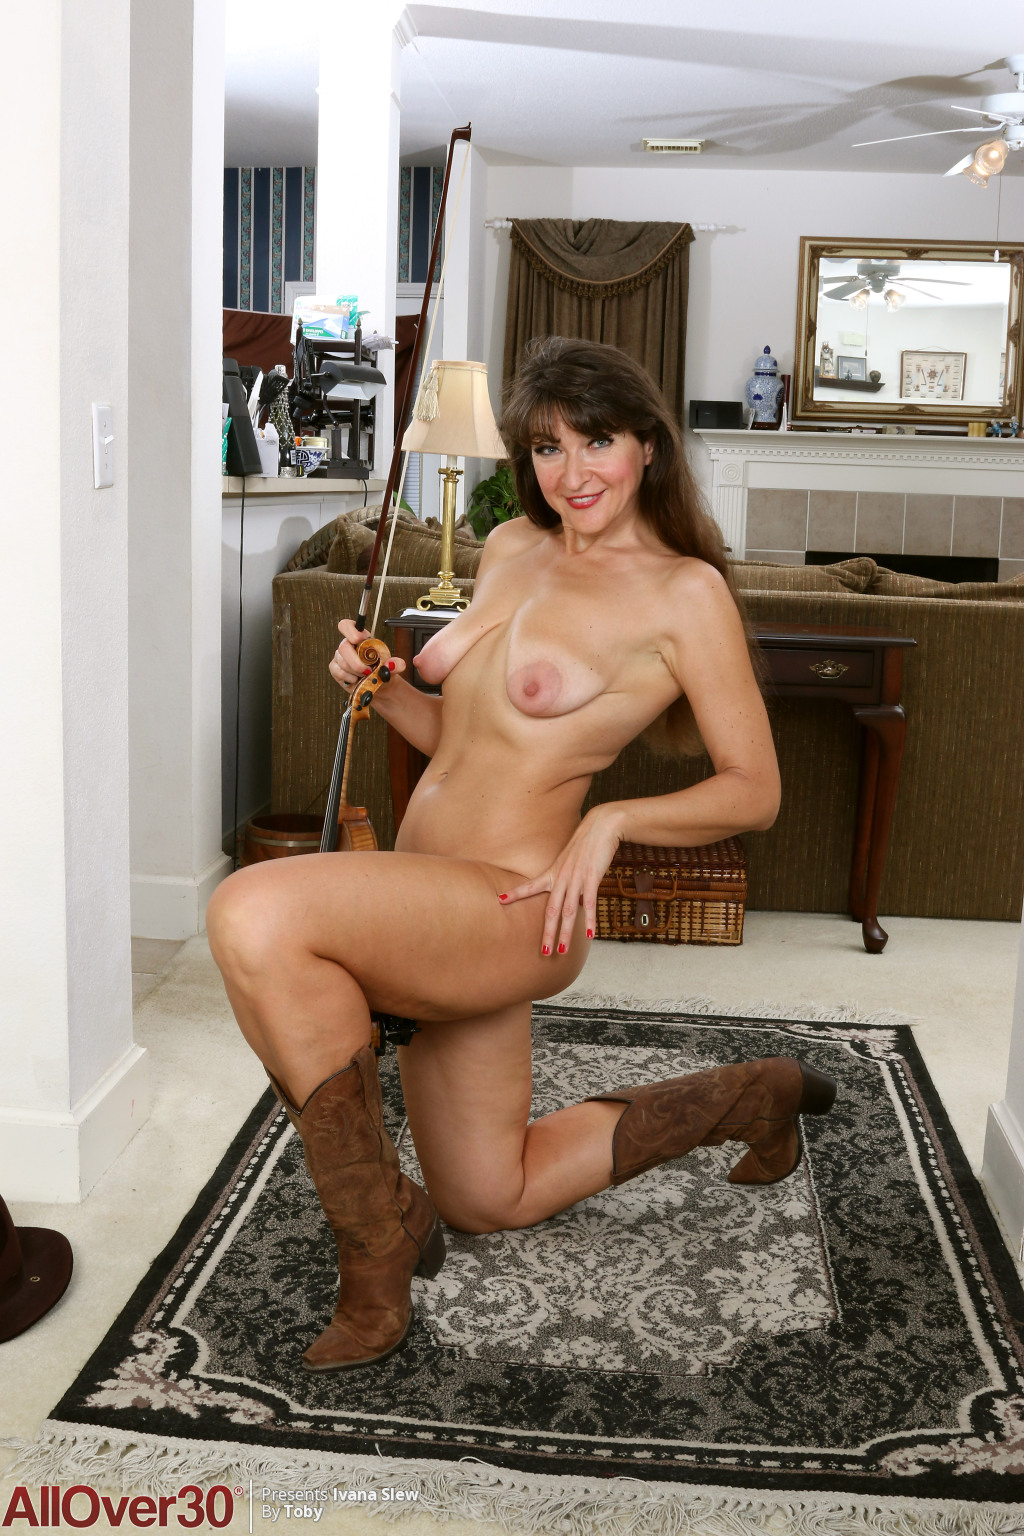 horny-cowgirl-ivana-slew-lets-us-see-her-saggy-breasts-and-hot-shaved-pussy12.jpg